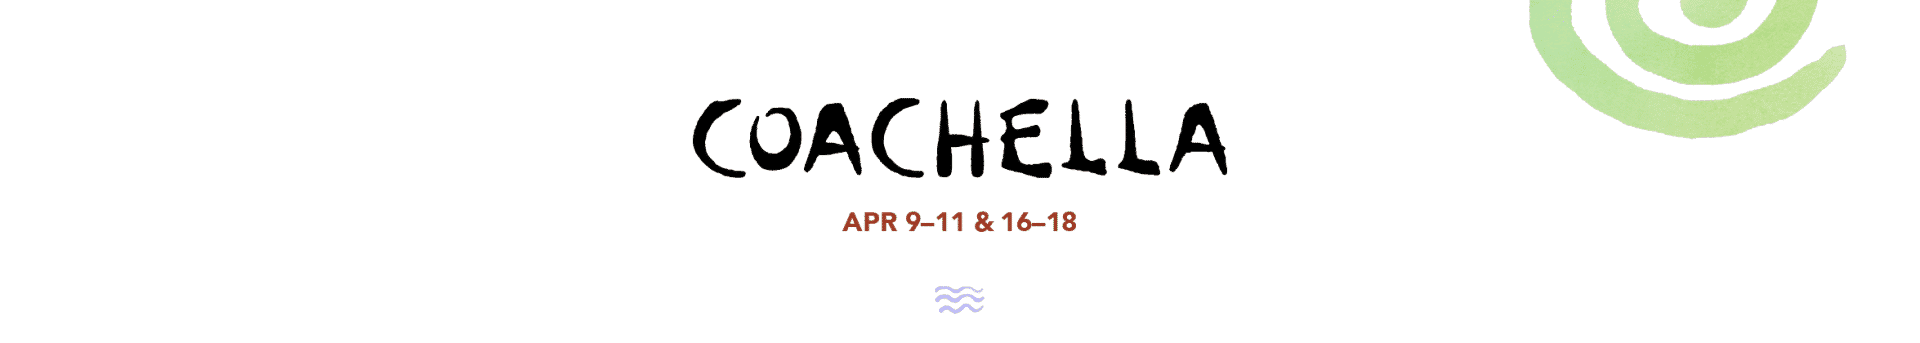 Coachella 2020 Safari Campgrounds